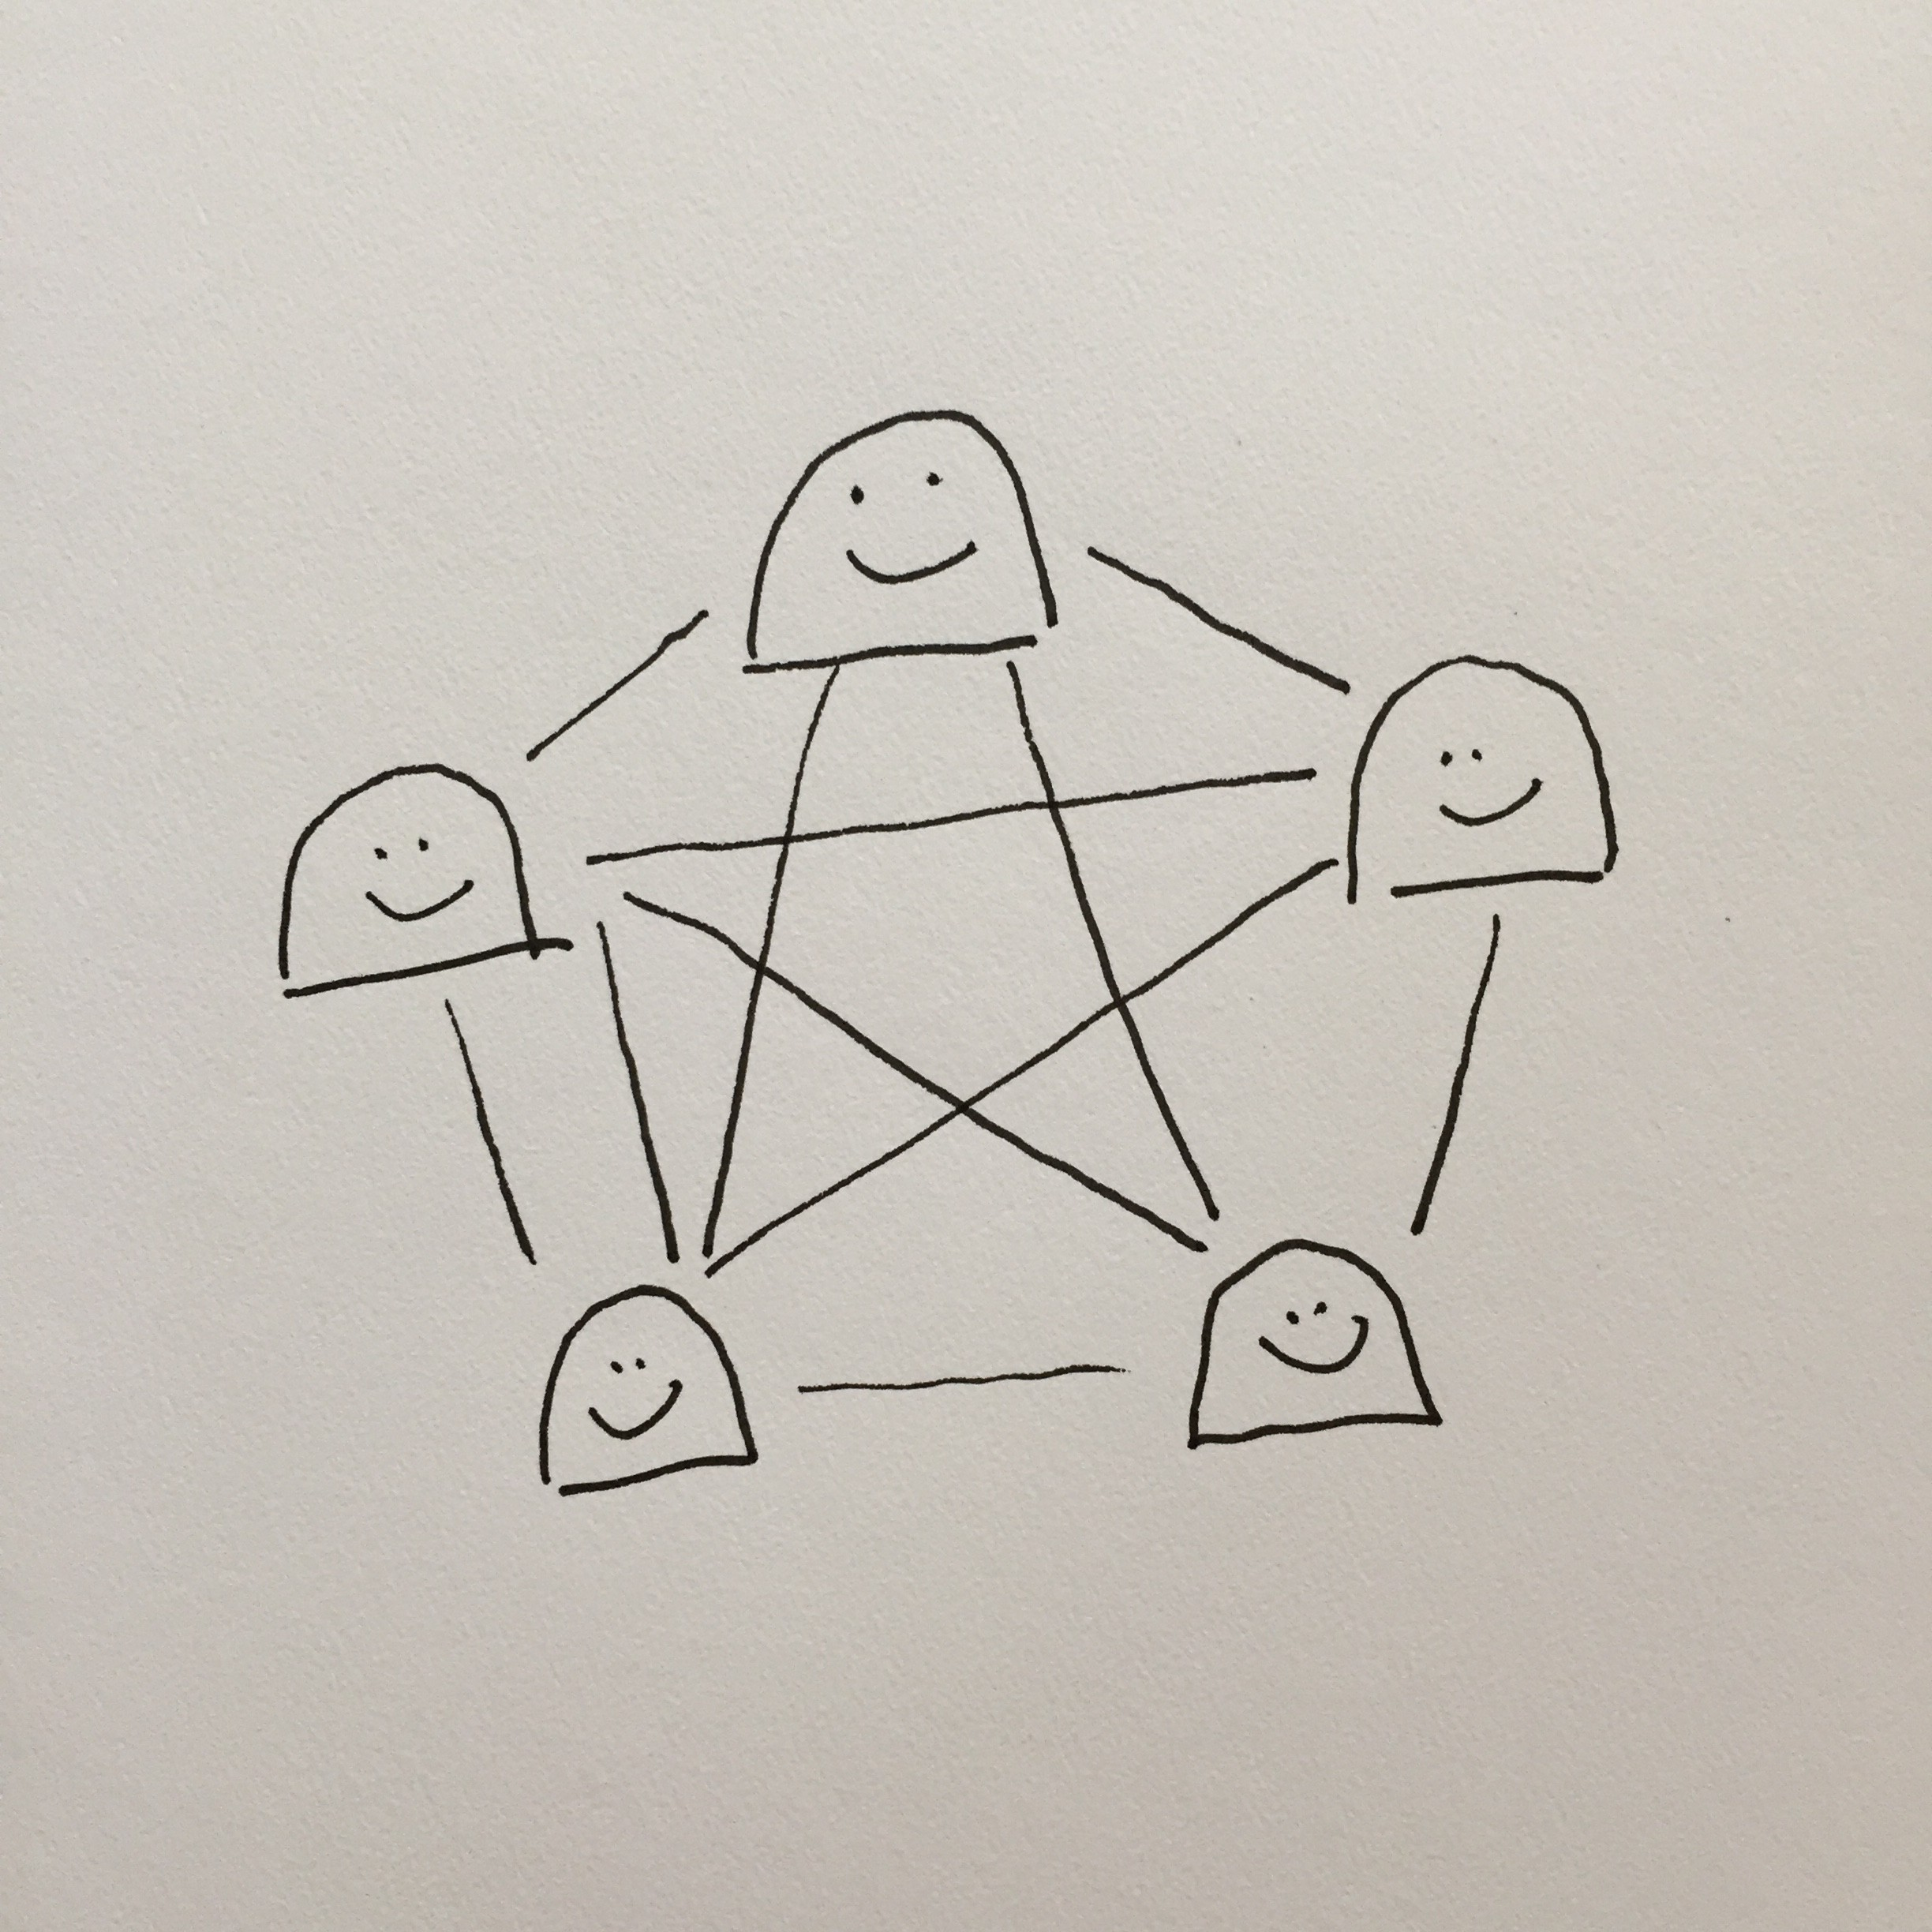 ink illustration of five happy gumdrop-looking creatures connected to each other, presumably talking to each other.